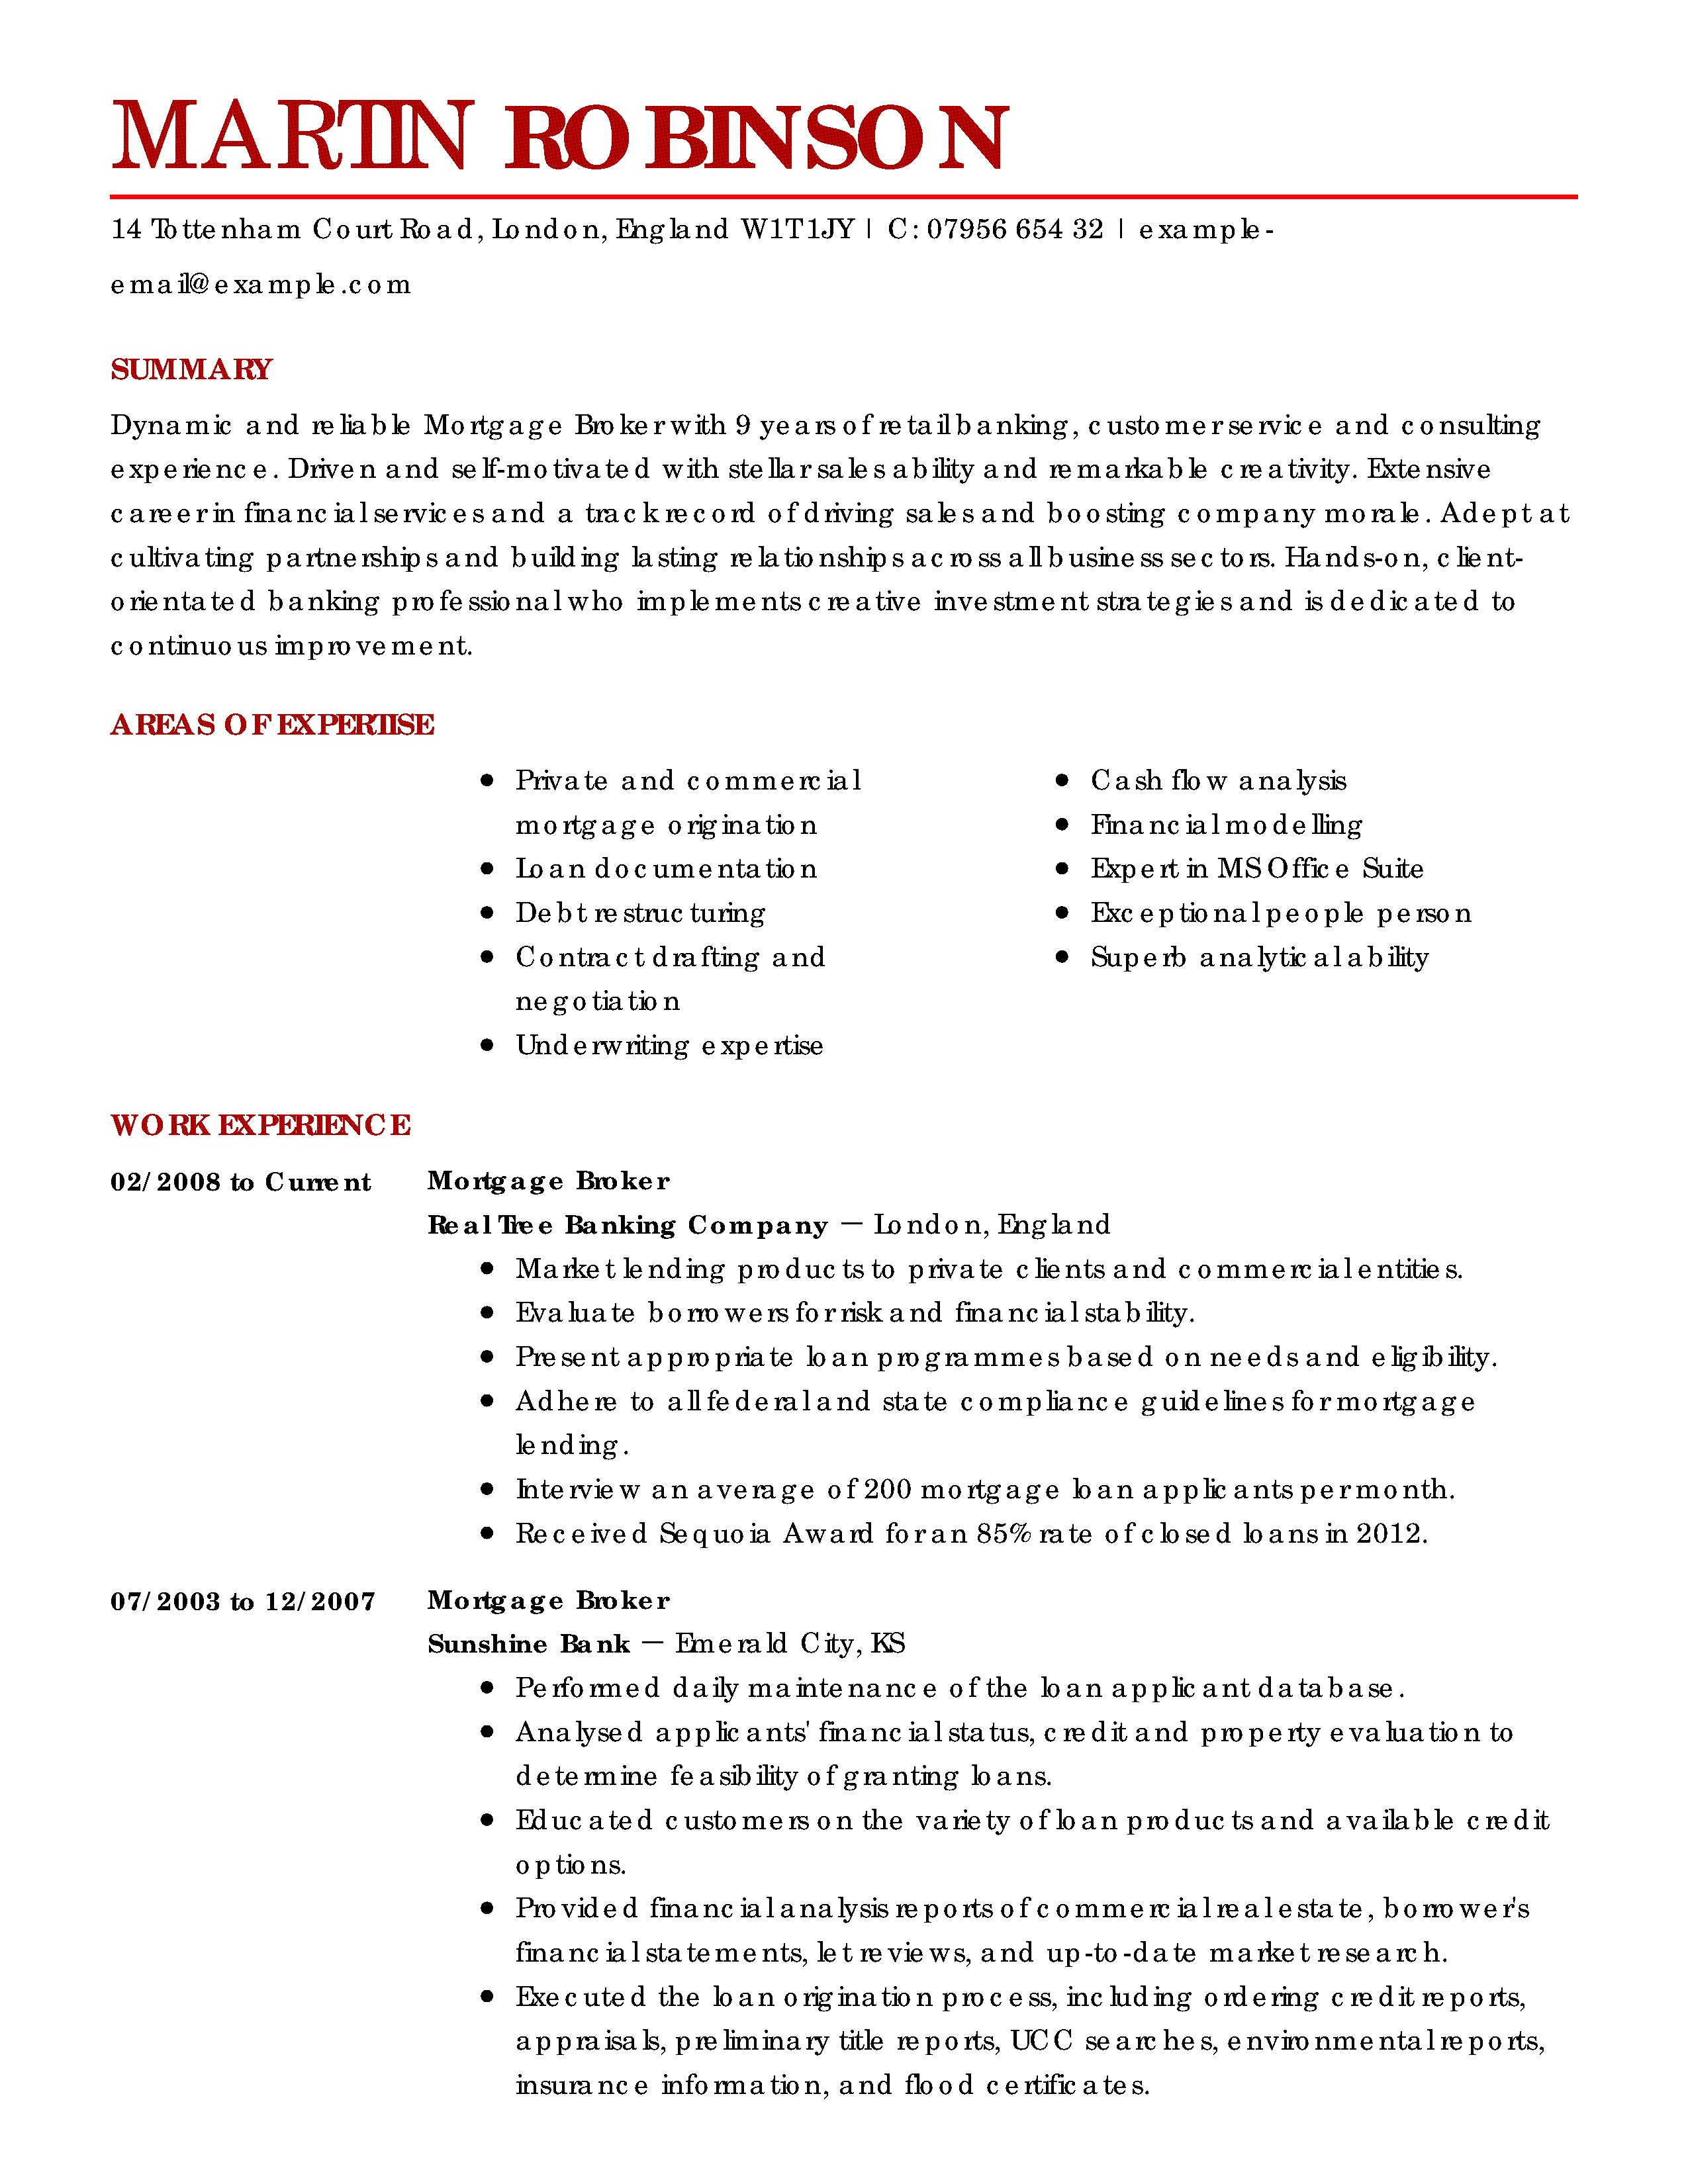 Real Estate Resumes Templates Amazing Real Estate Resume Examples to Get You Hired